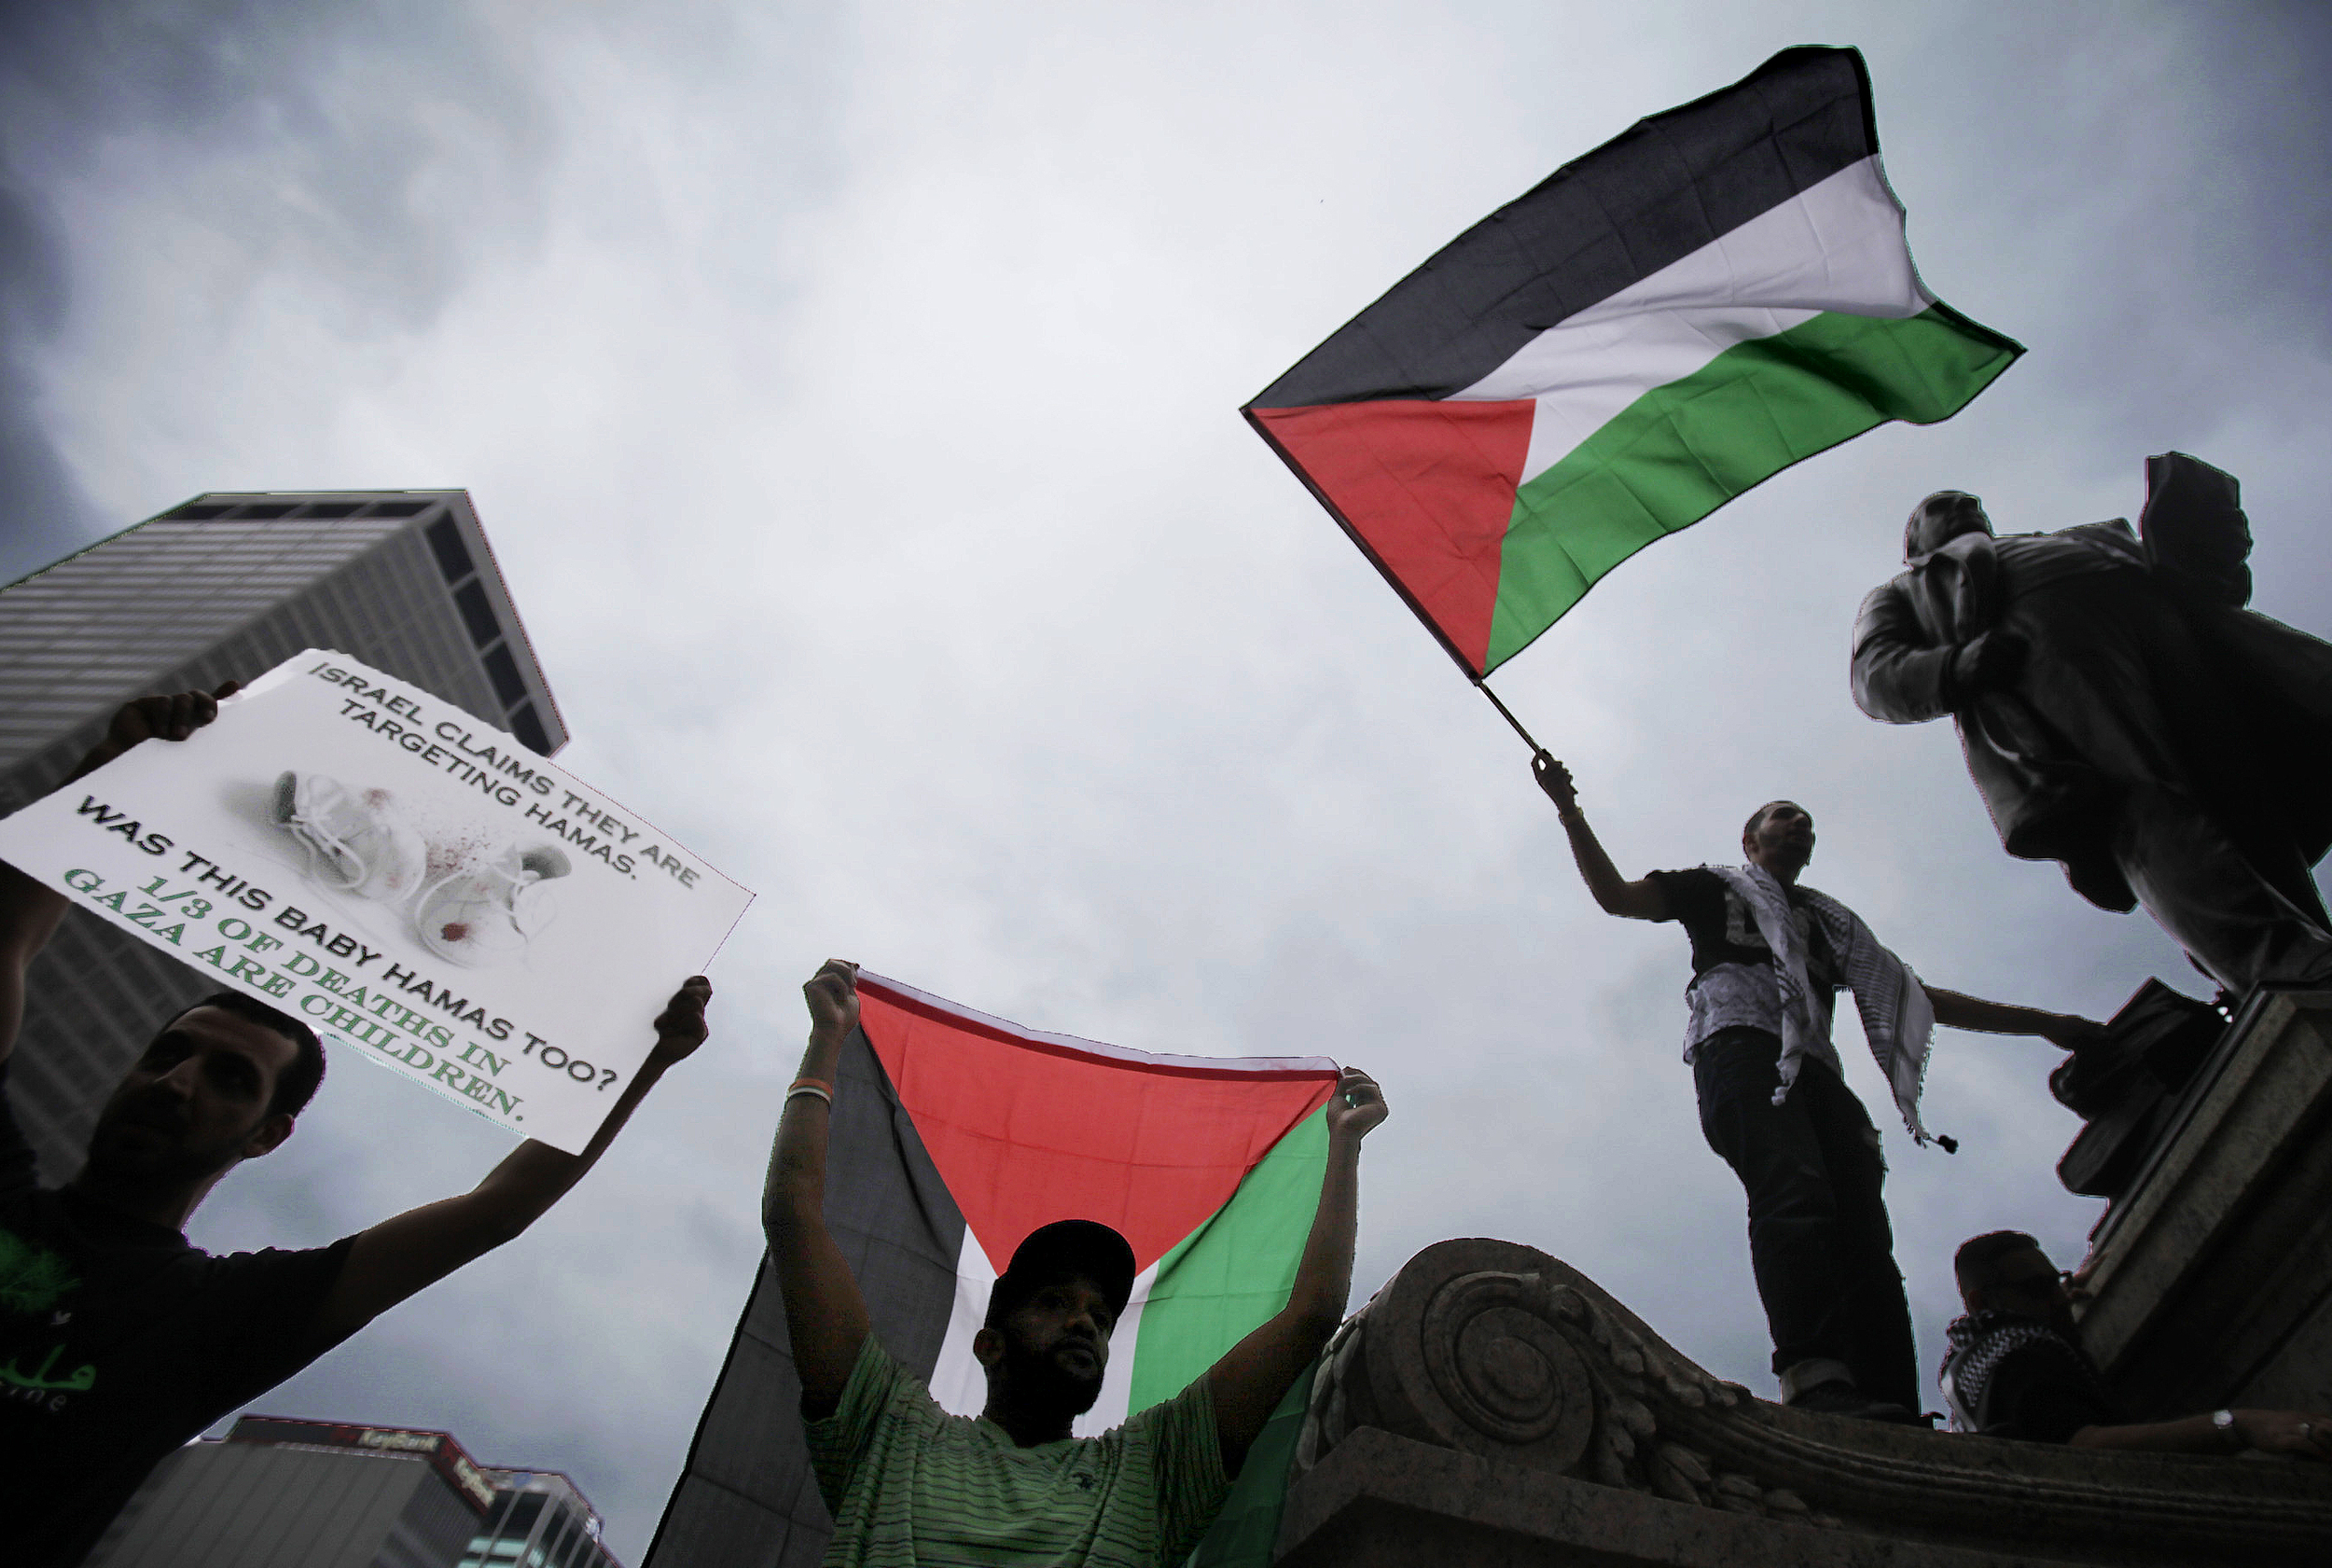 Demonstrators protest to free Gaza and Palestine in front of the Ohio Statehouse in downtown Columbus, Ohio, on Saturday, July 19, 2014.